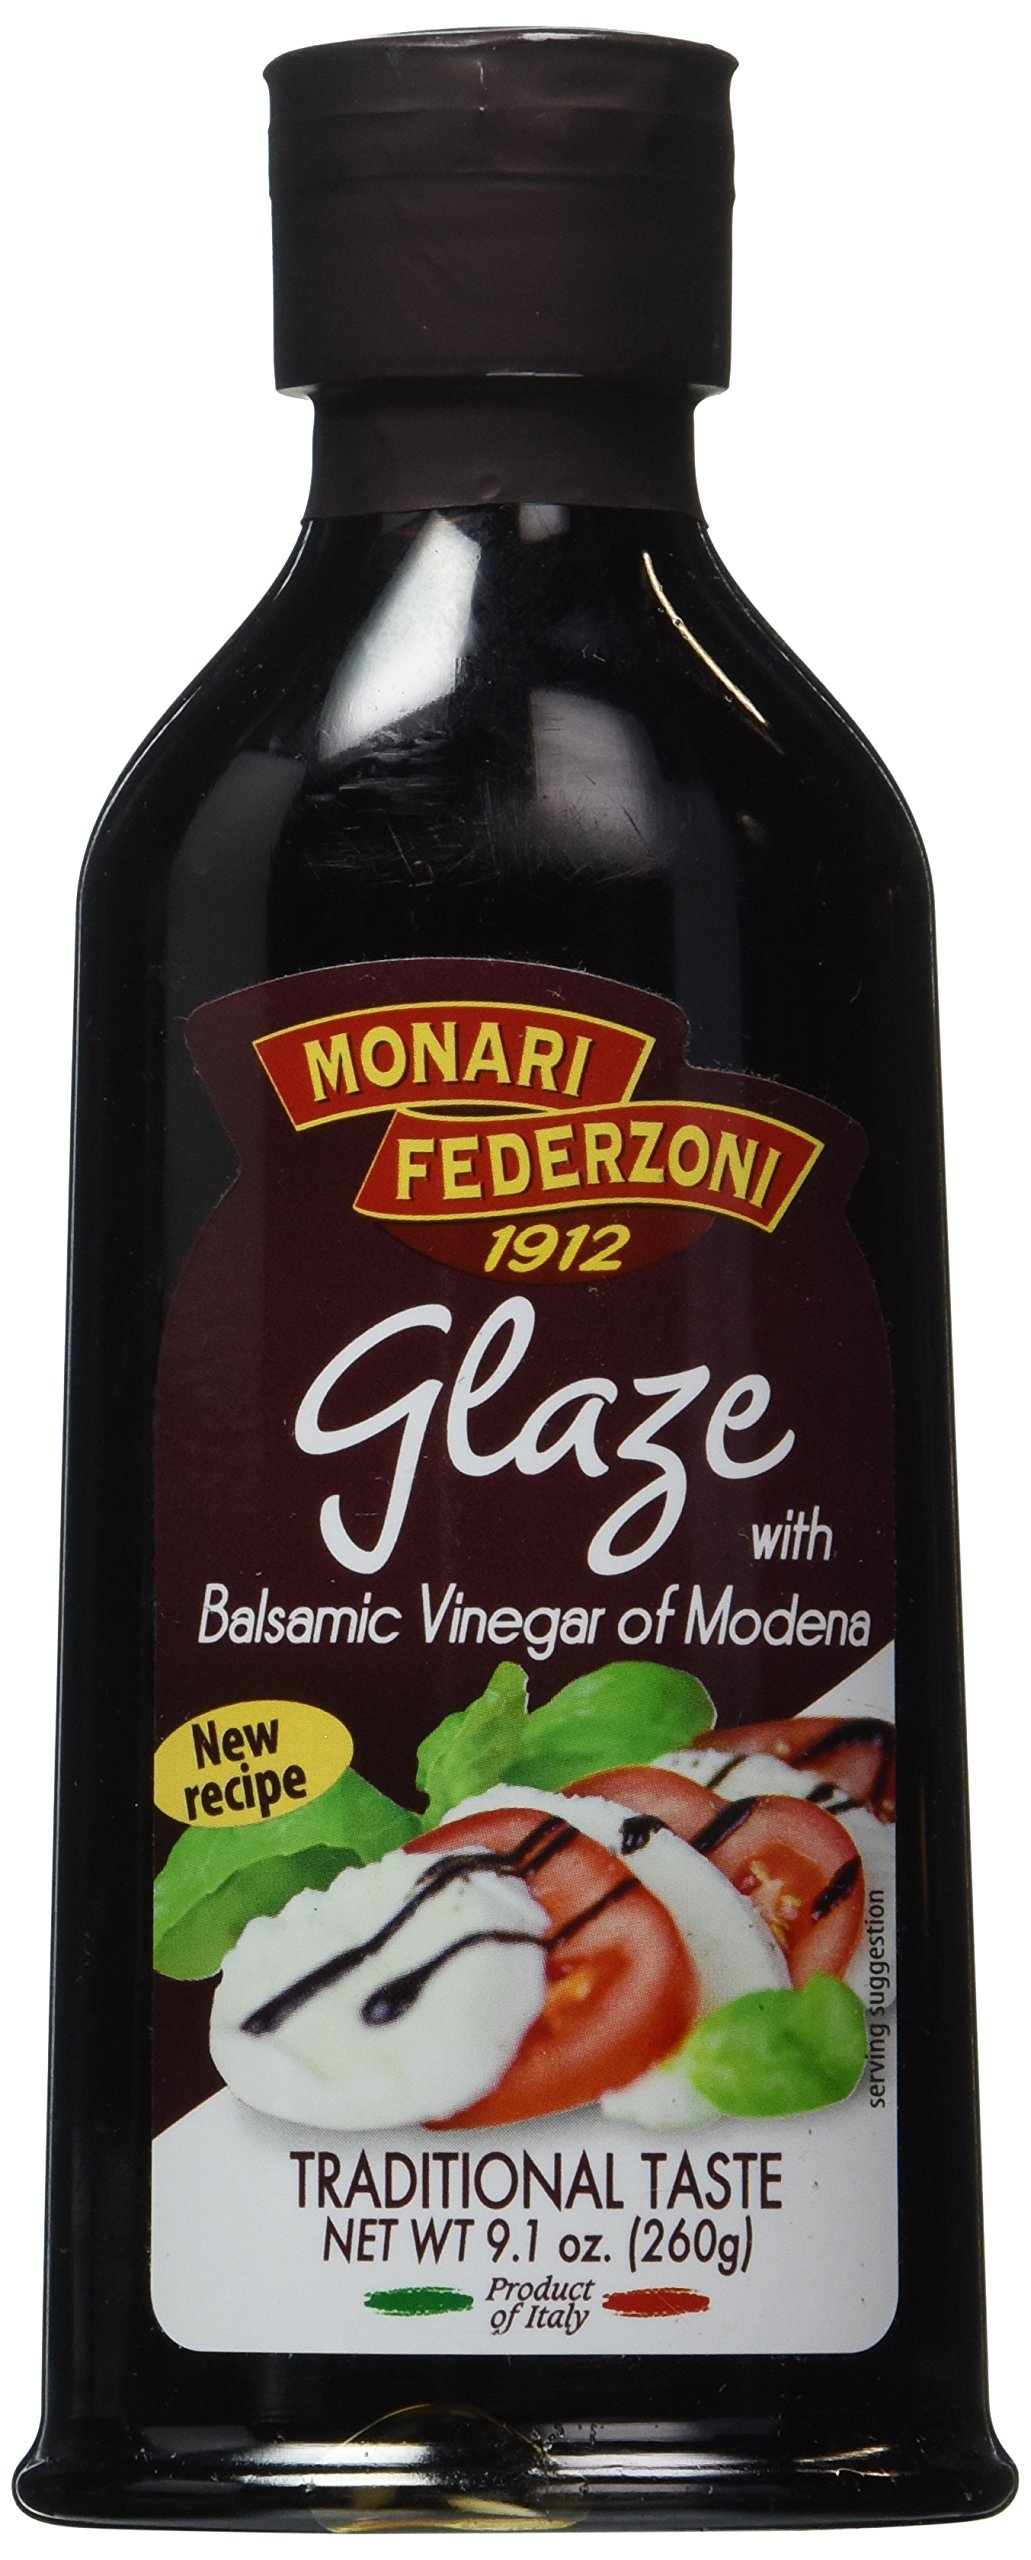 Monari Federzoni Glaze with Balsamic Vinegar of Modena - 9.1 0z 1 Finest Quality